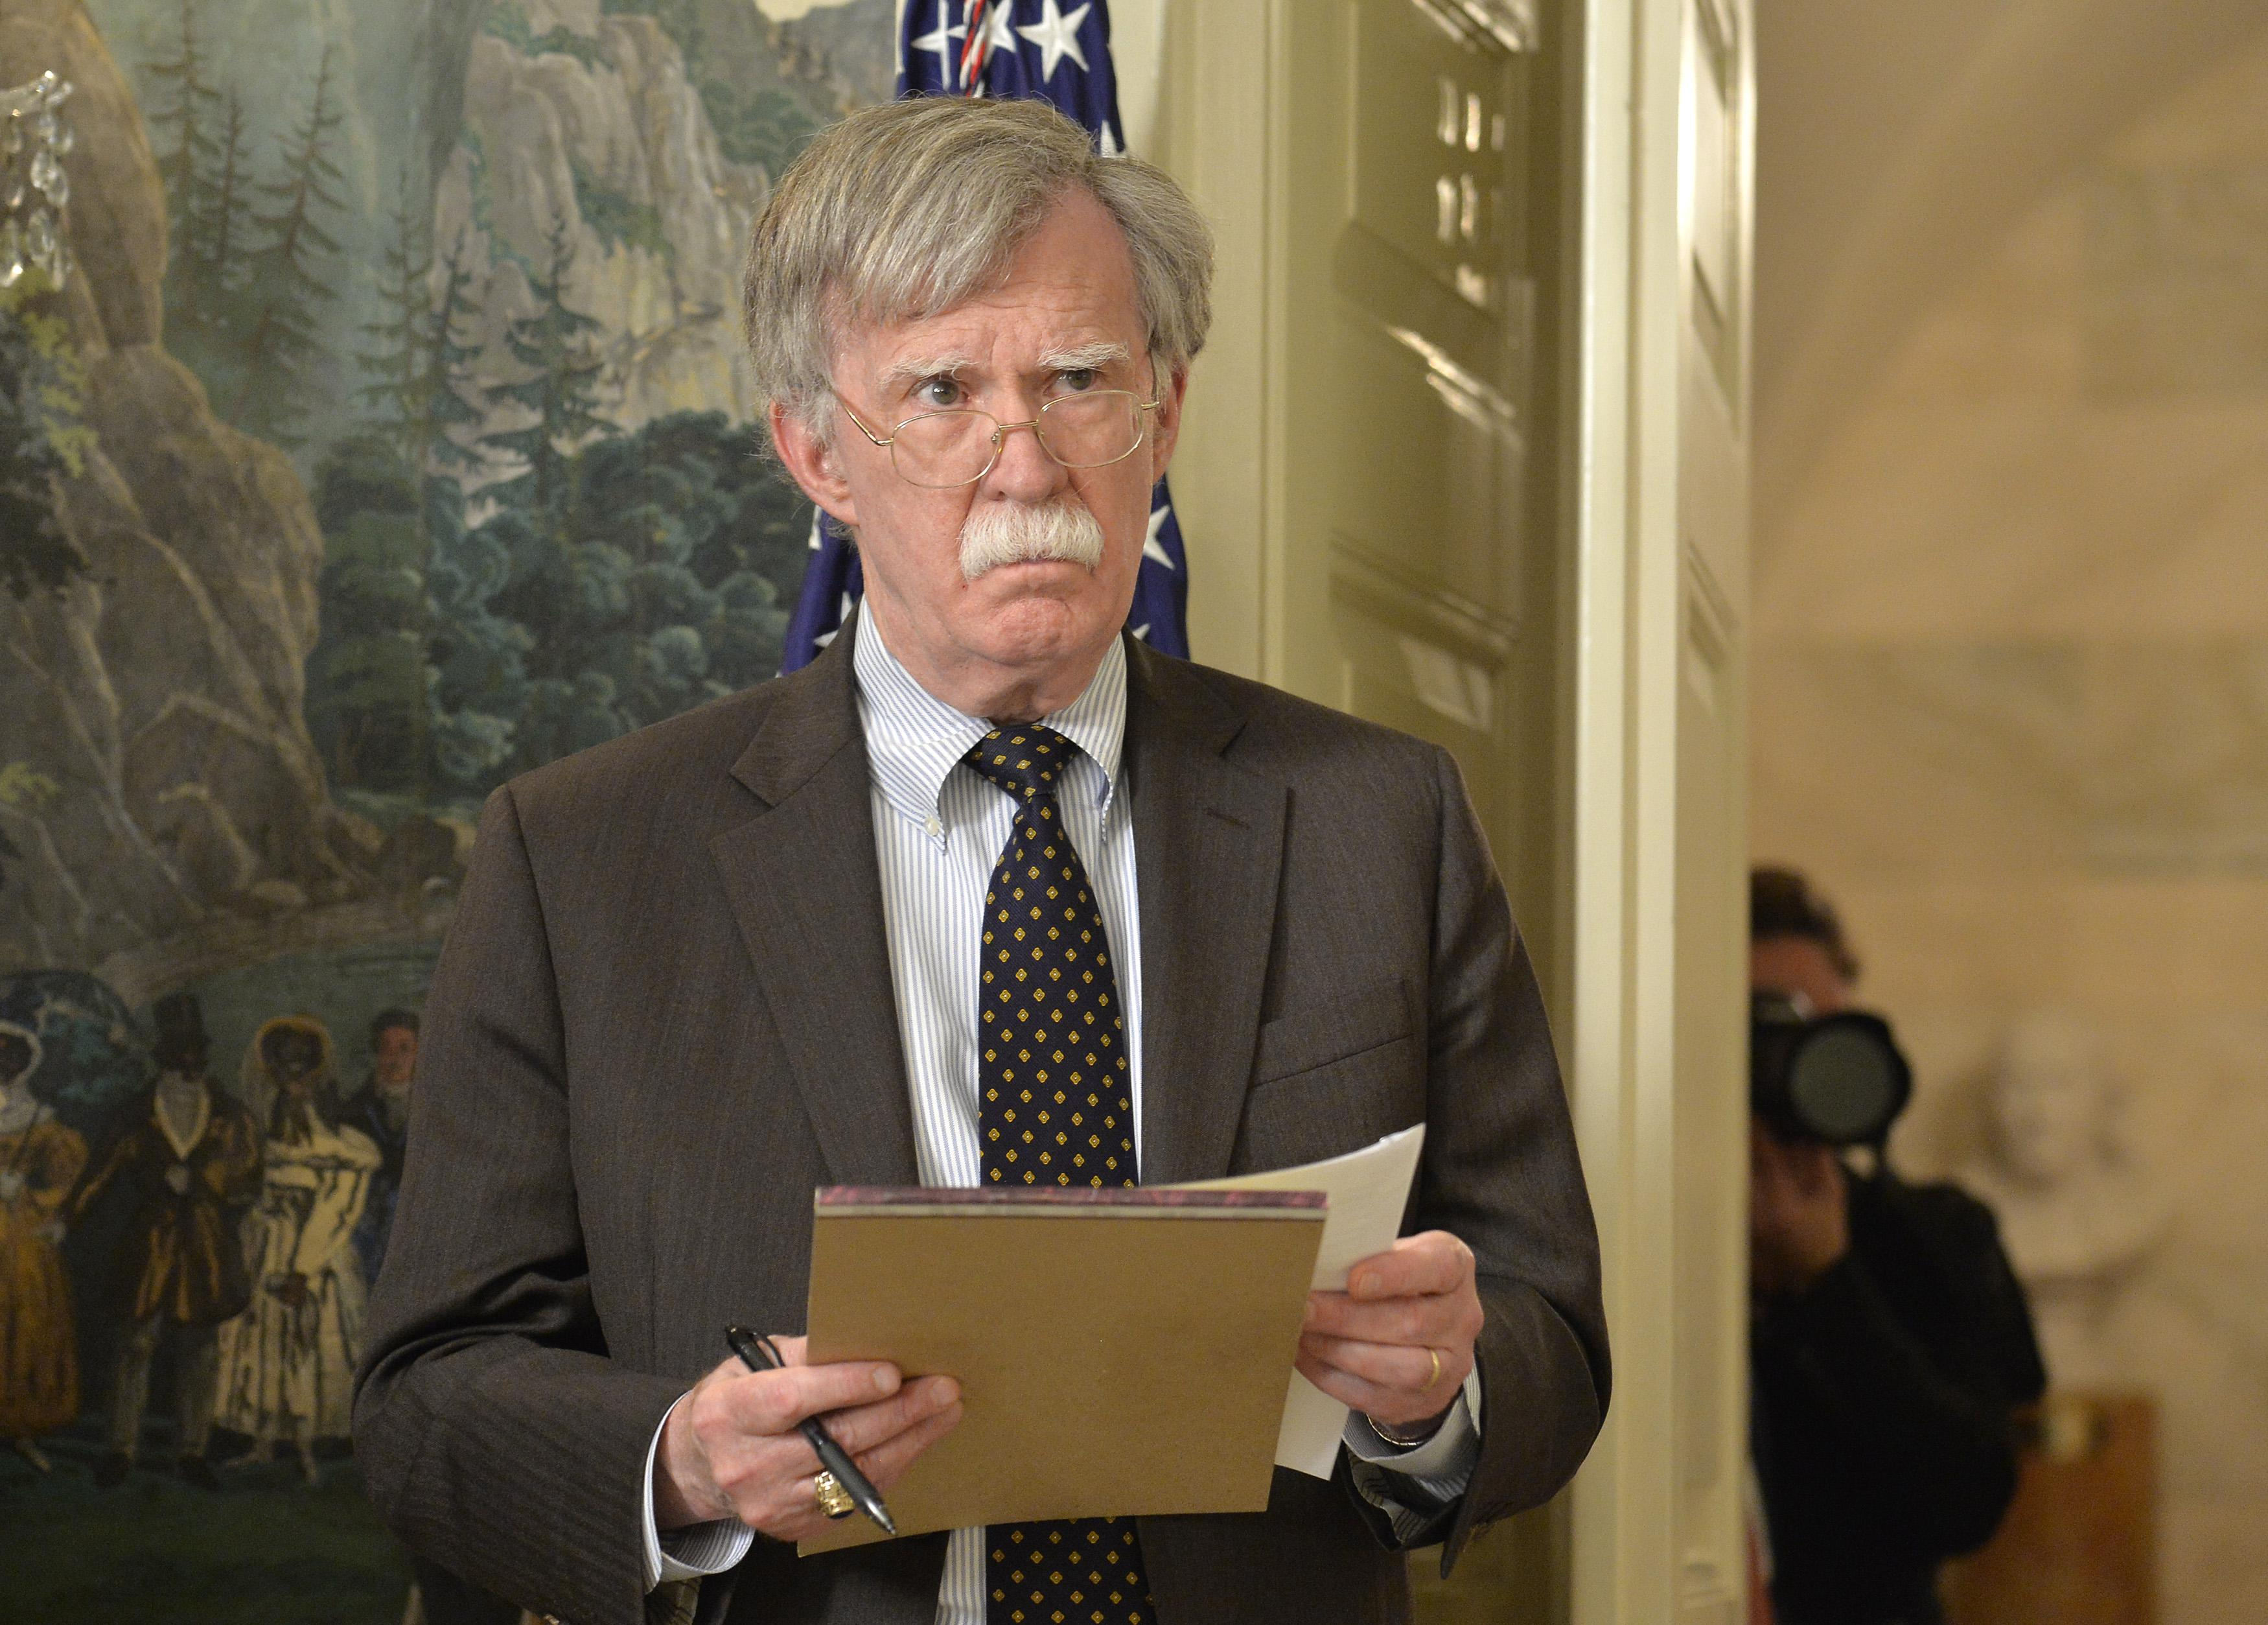 John Bolton holds a legal pad and pen.